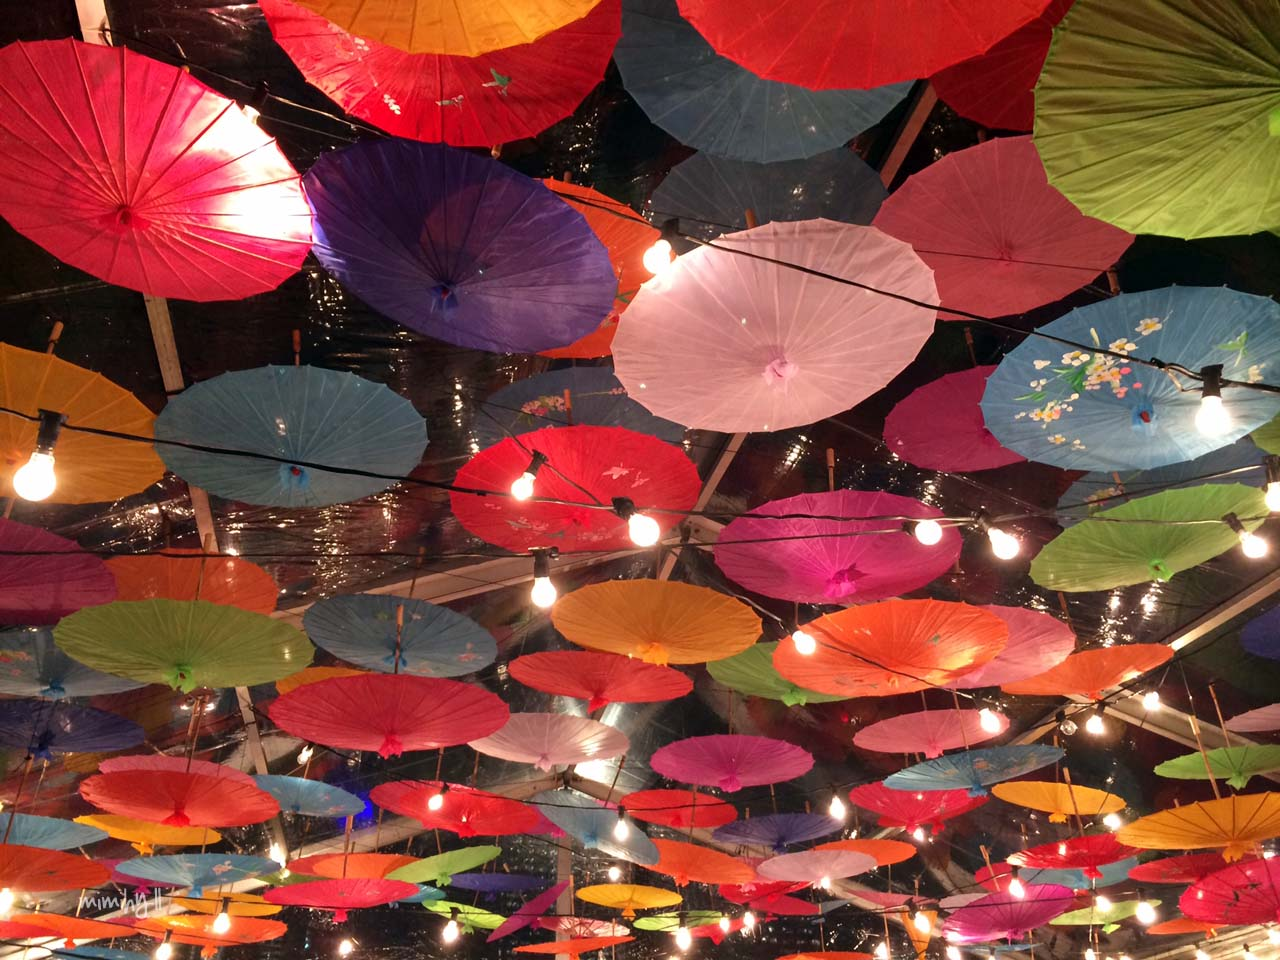 Umbrella decoration at Night Noodle Markets